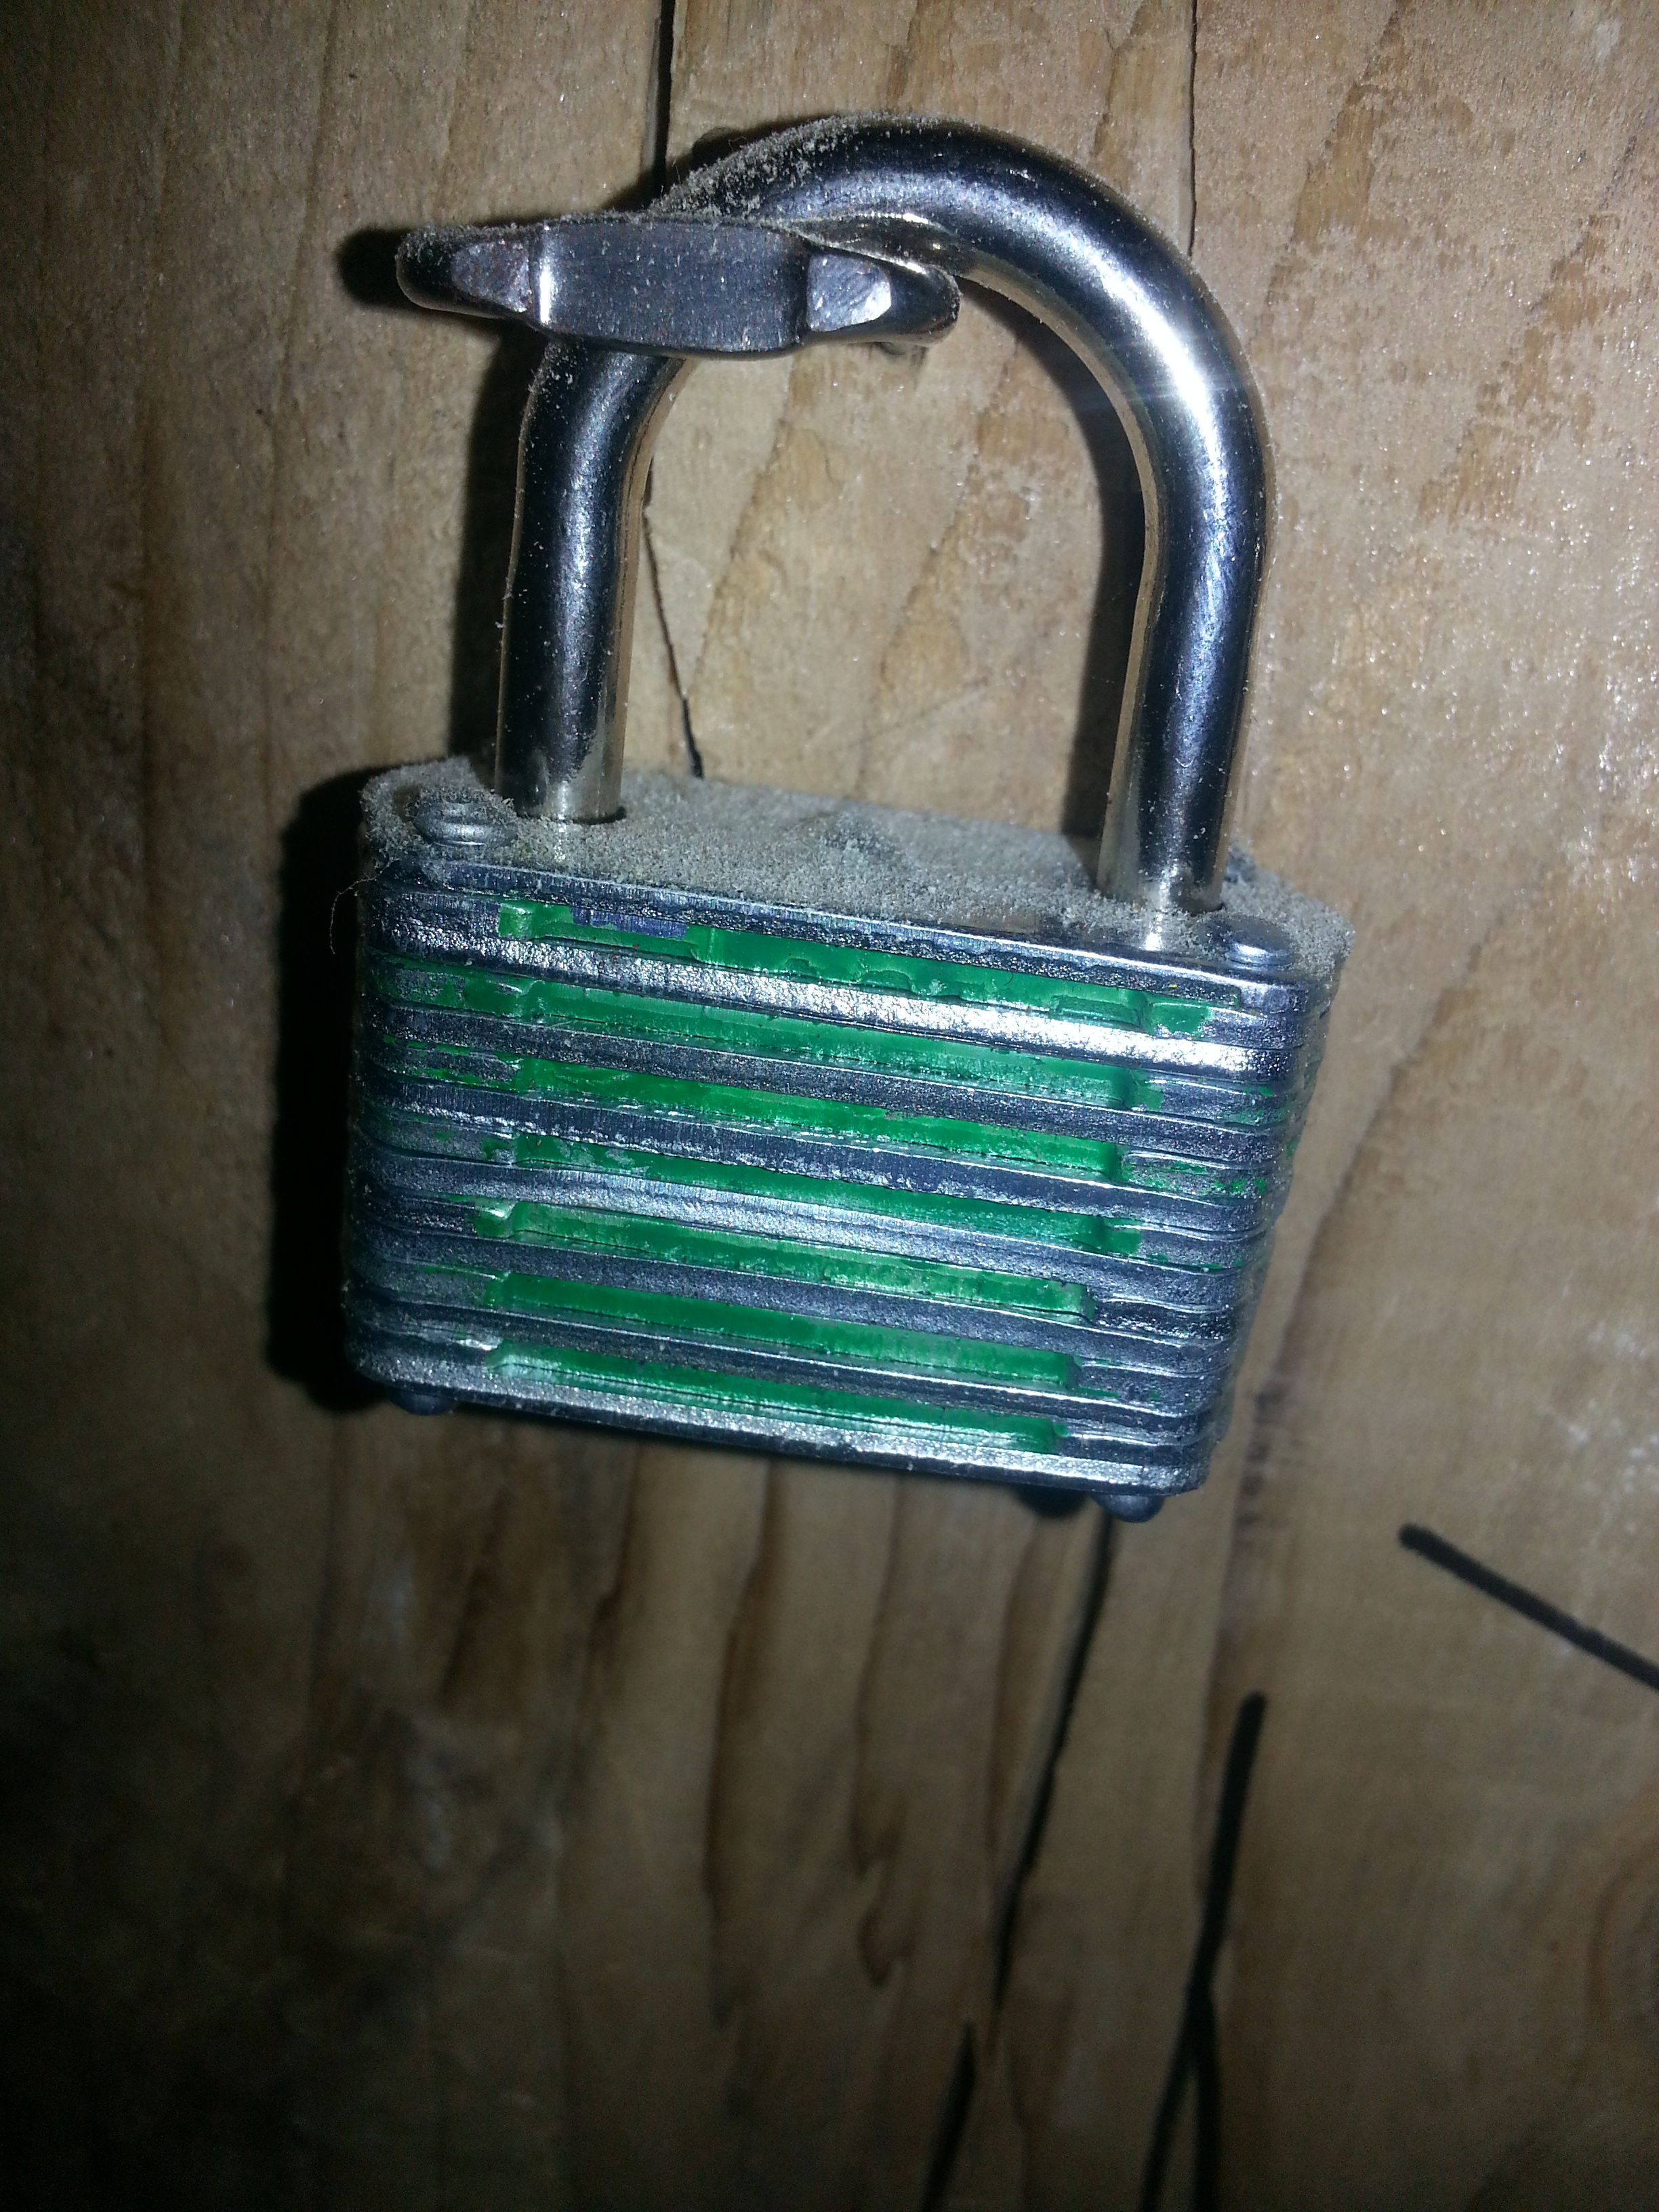 Picture of Install Locks